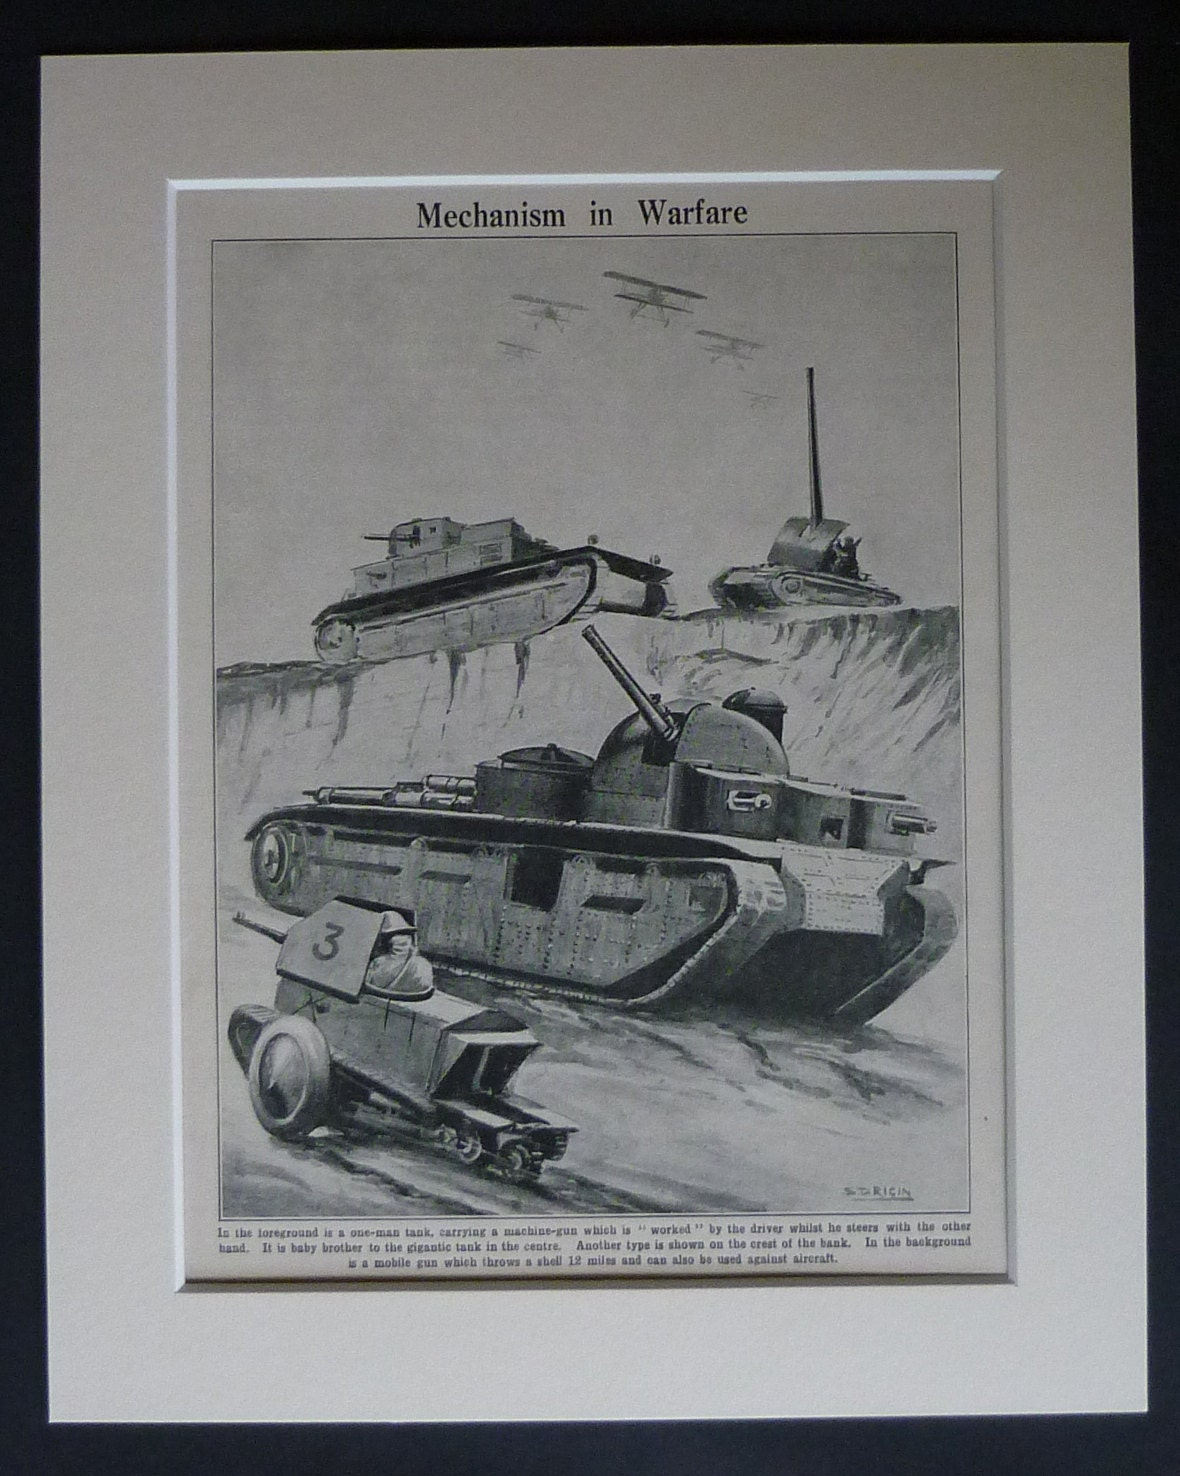 Usaf Wall Decor : Antique tank print military wall art war decor